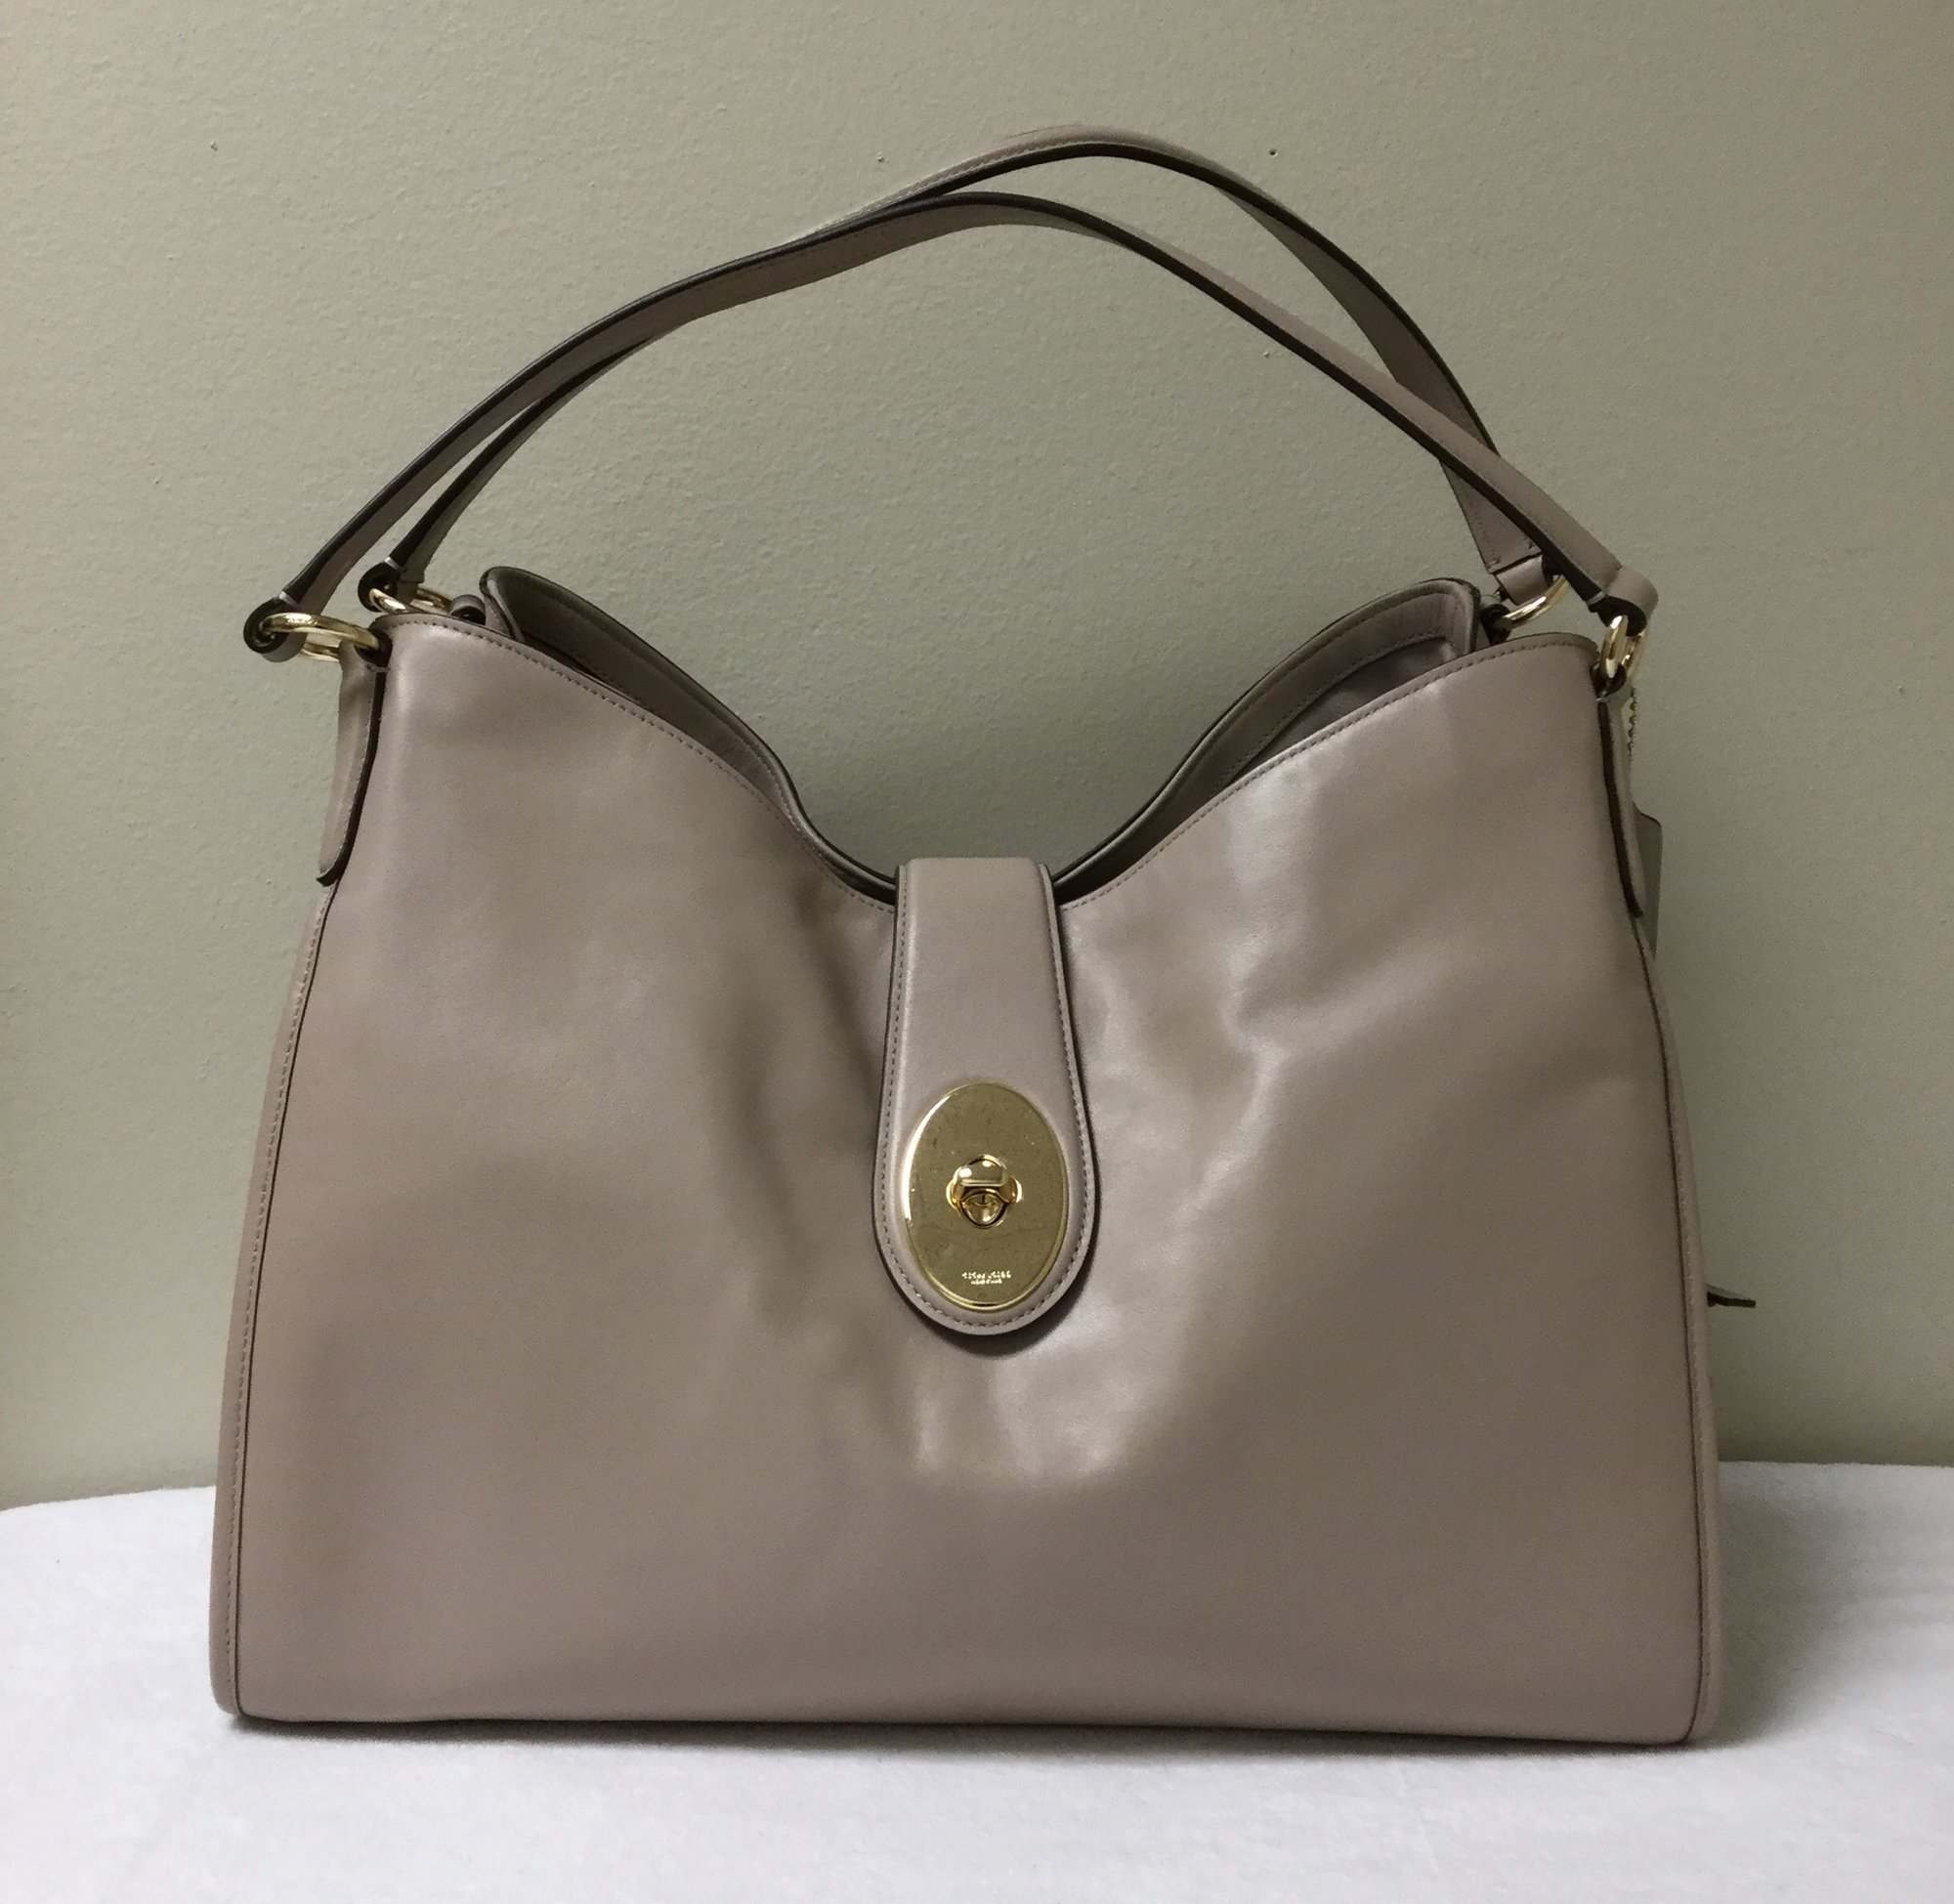 Coach Two Handle Bag<br /> Size Large<br /> Color Taupe<br /> Price $87.00